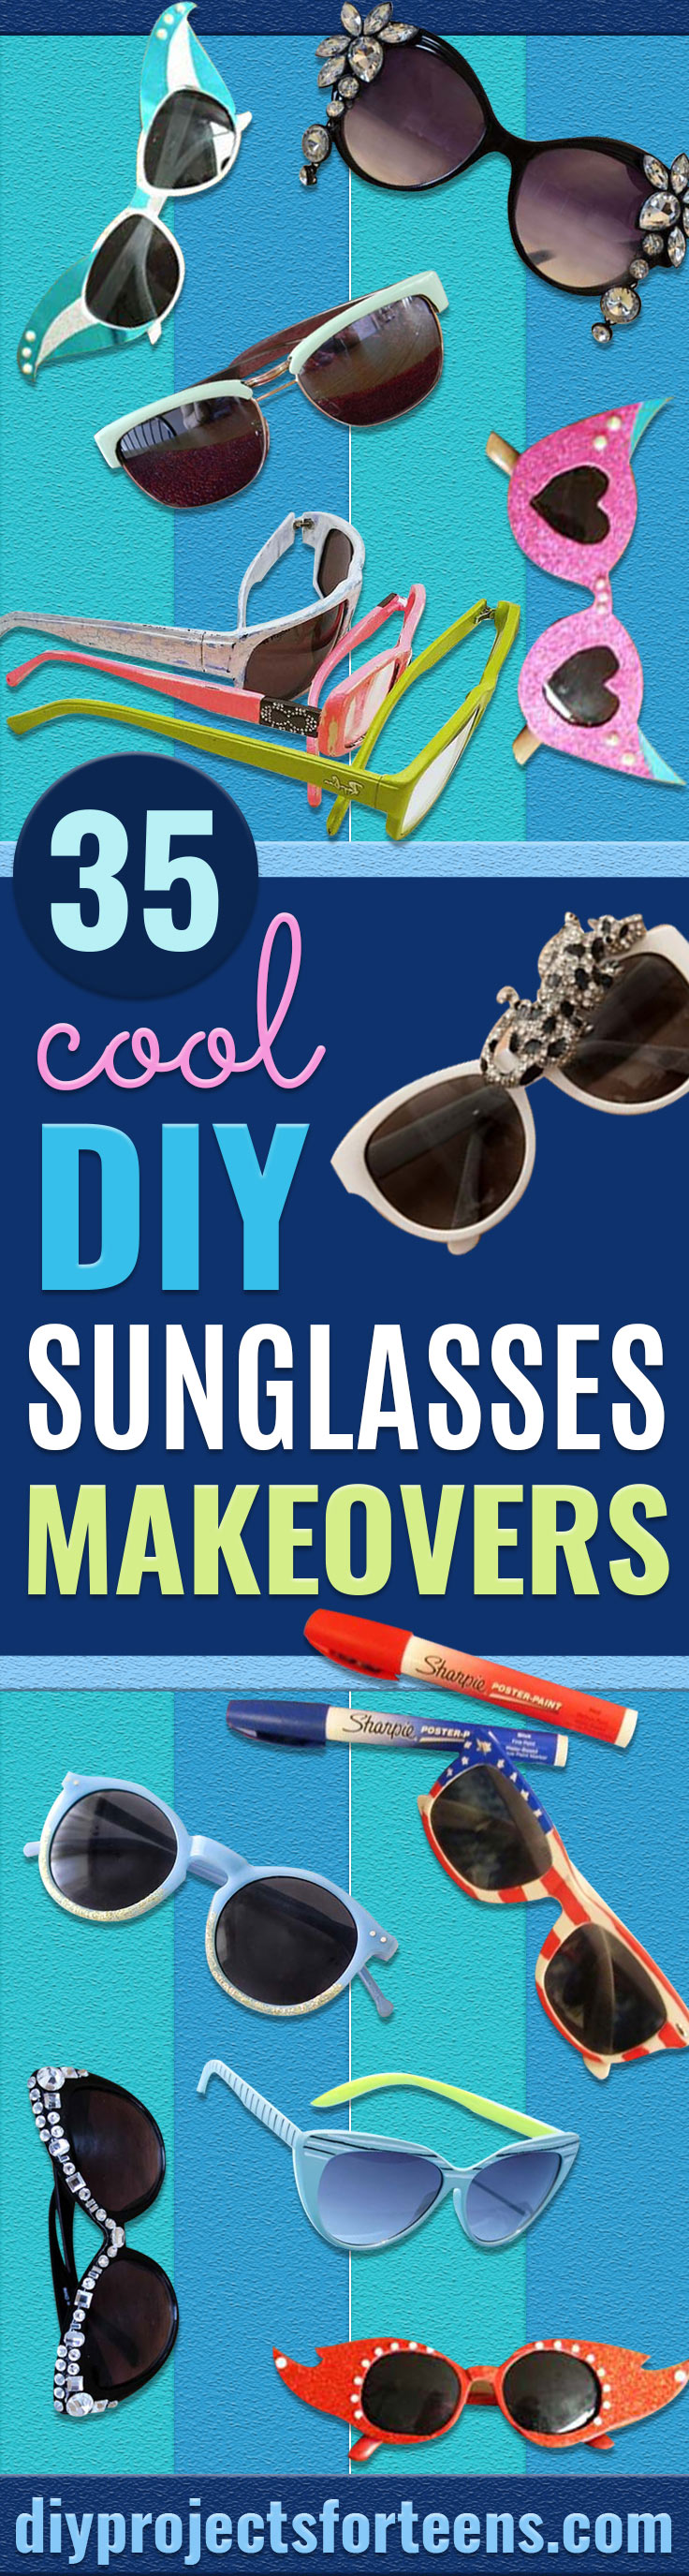 DIY Sunglasses Makeovers - Fun Ways to Decorate and Embellish Sunglasses - Embroider, Paint, Add Jewels and Glitter to Your Shades - Cheap and Easy Projects and Crafts for Teens http://diyprojectsforteens.com/diy-sunglasses-makeovers